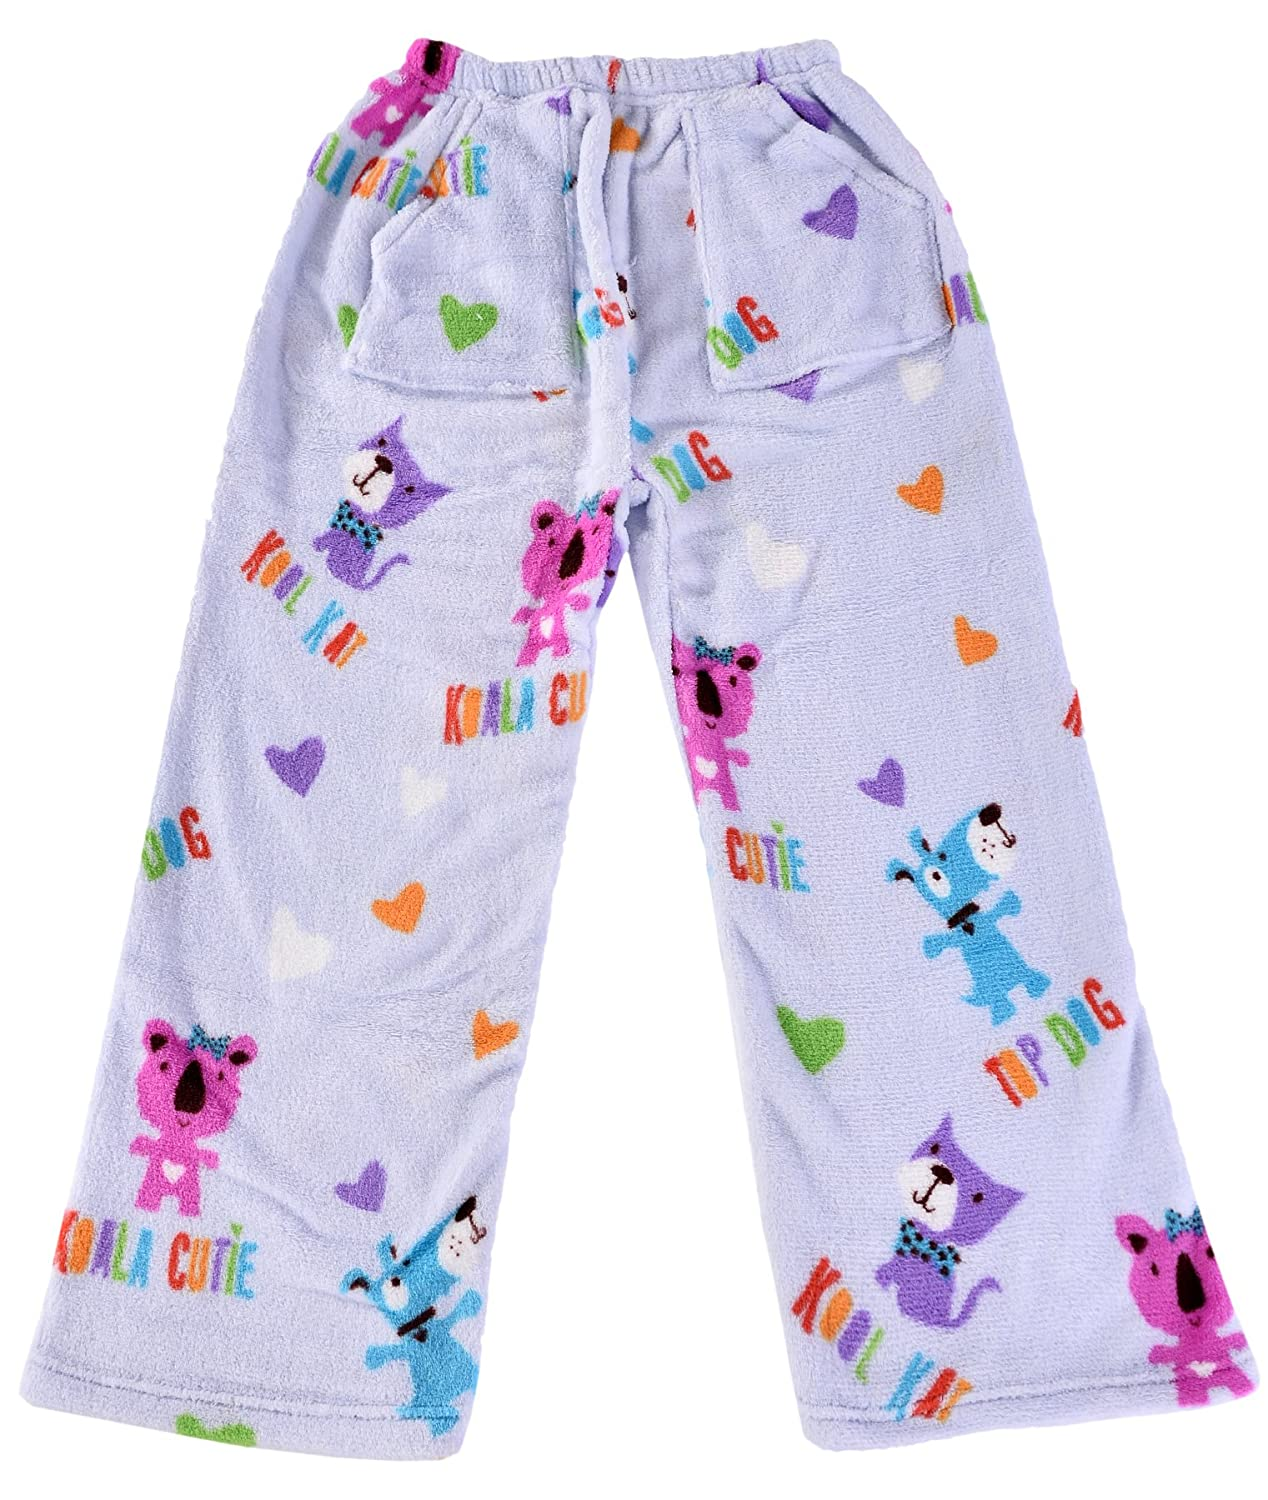 iscream Big Girls' Heavyweight Fun Print Plush Fleece Pants The Mines Press Inc. 820-PP